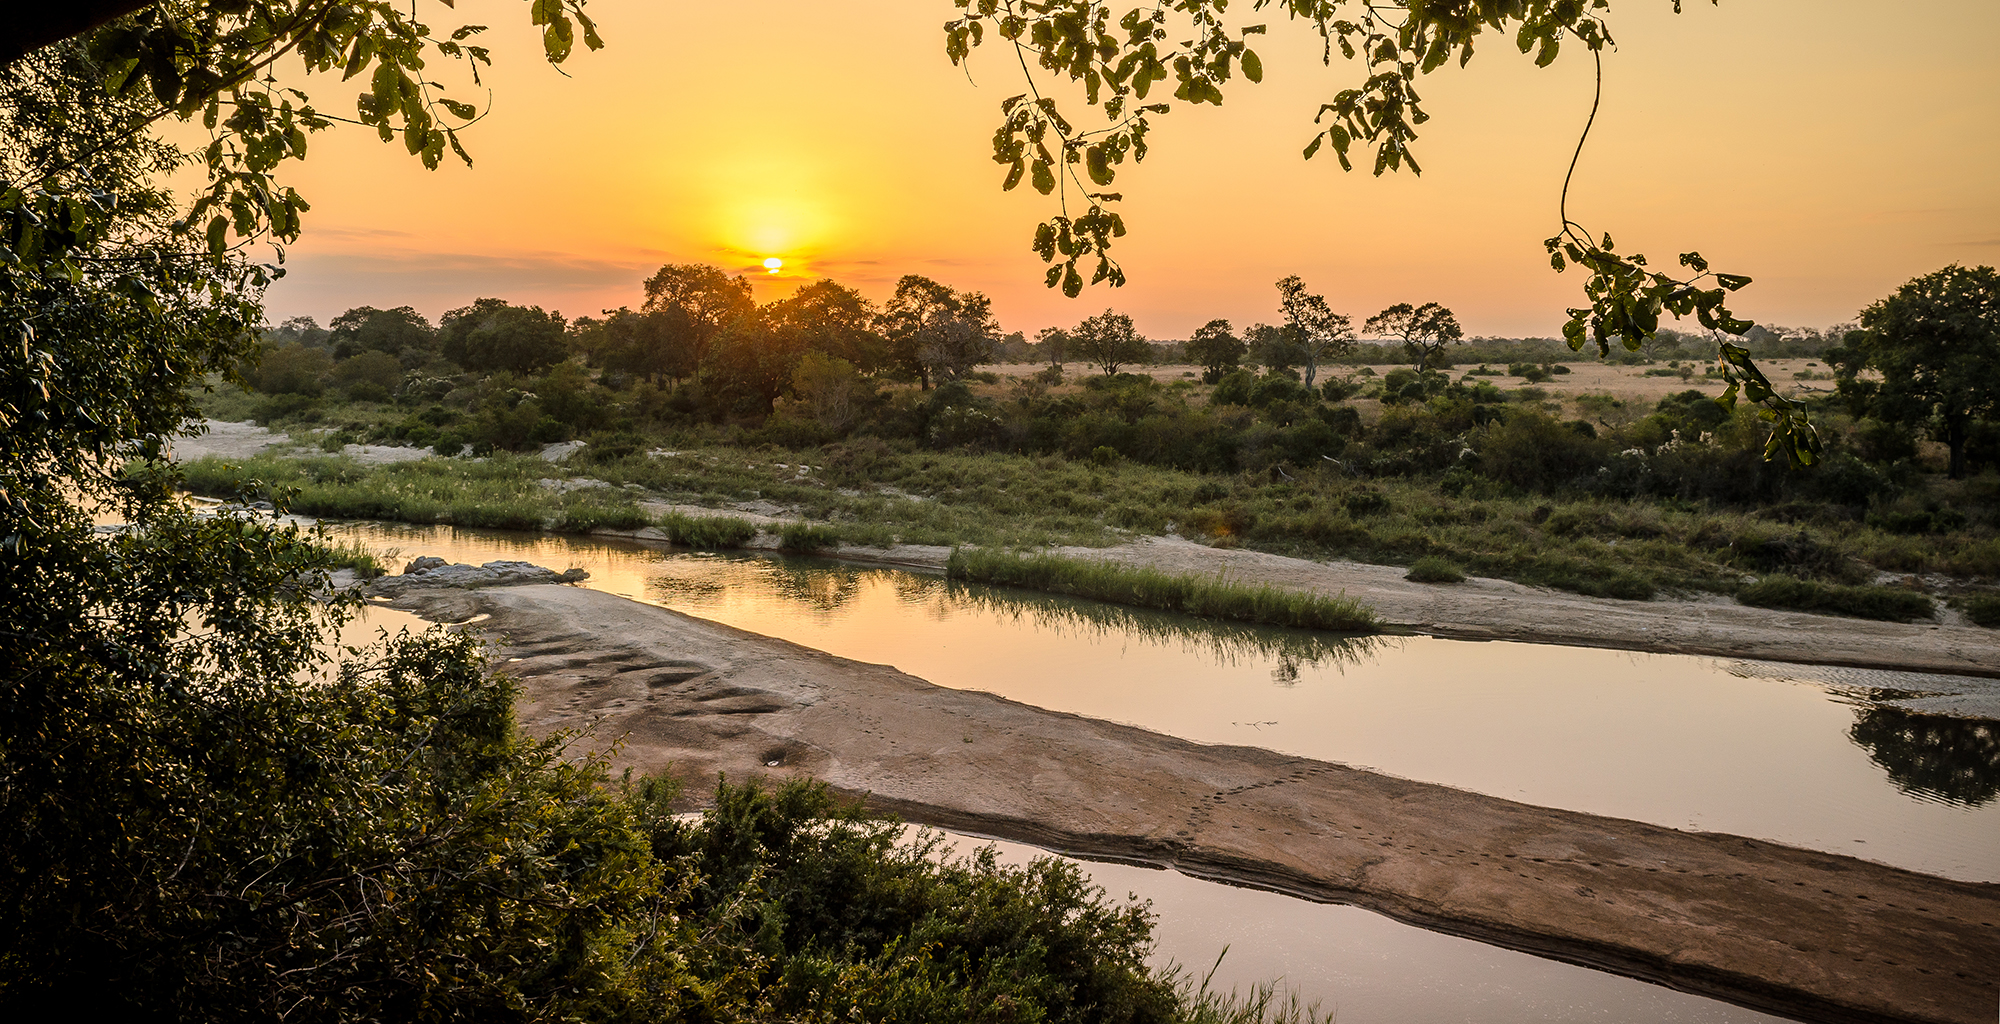 South-Africa-Kruger-National-Park-Sunset-River